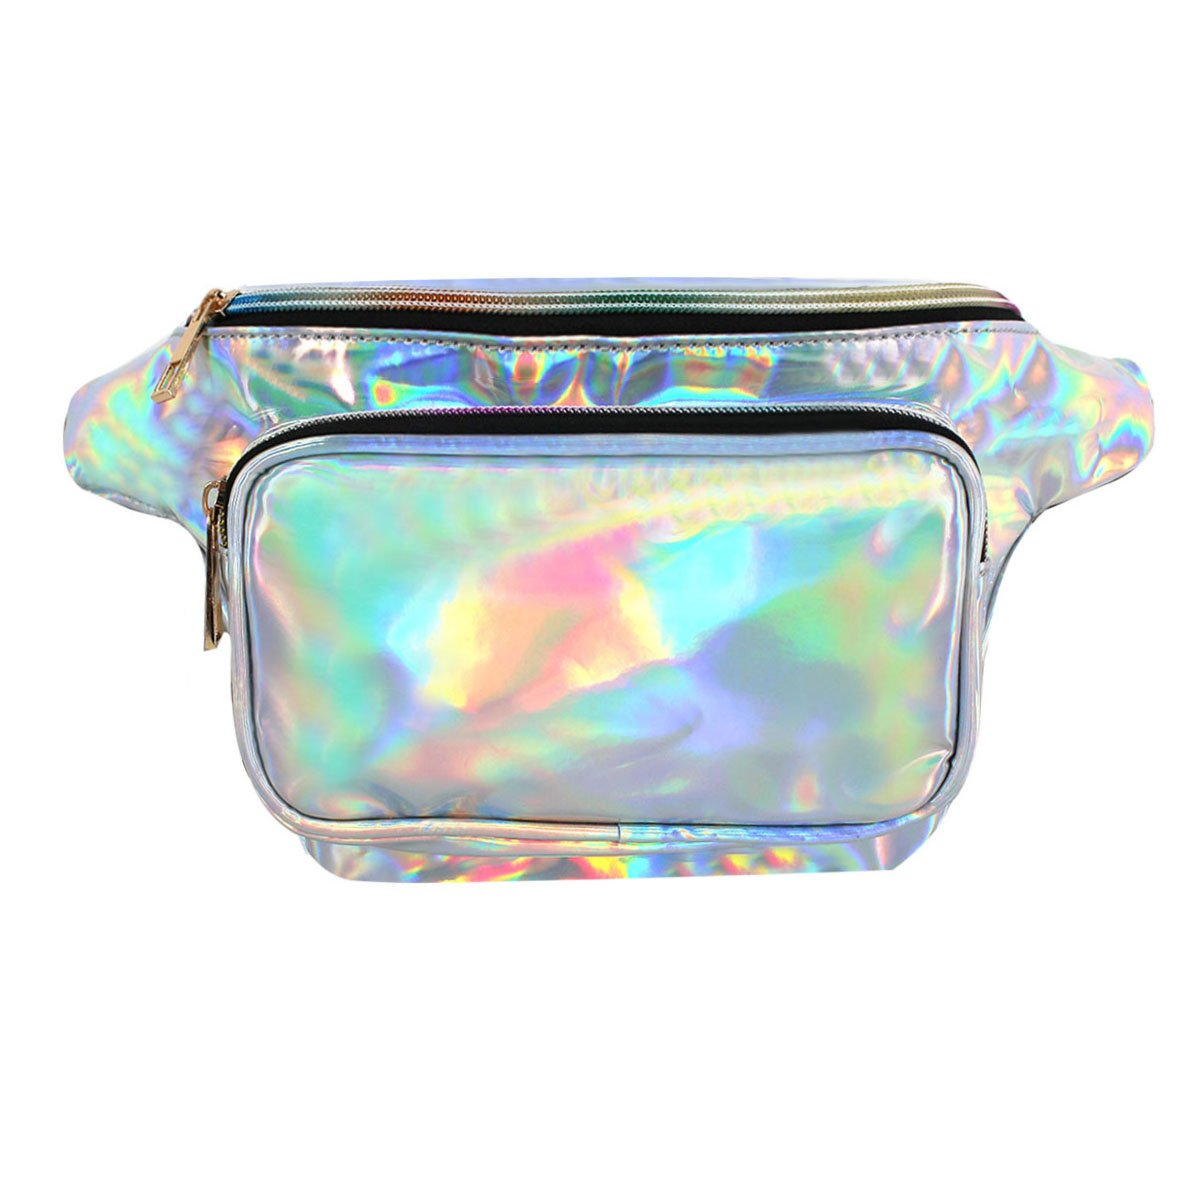 AiSi Women's PVC Hologram Fanny Pack Bum Bag Waist Bag Hiking Pack Bike Pack Silver Waist Bag AYDBL-hjb132-04m